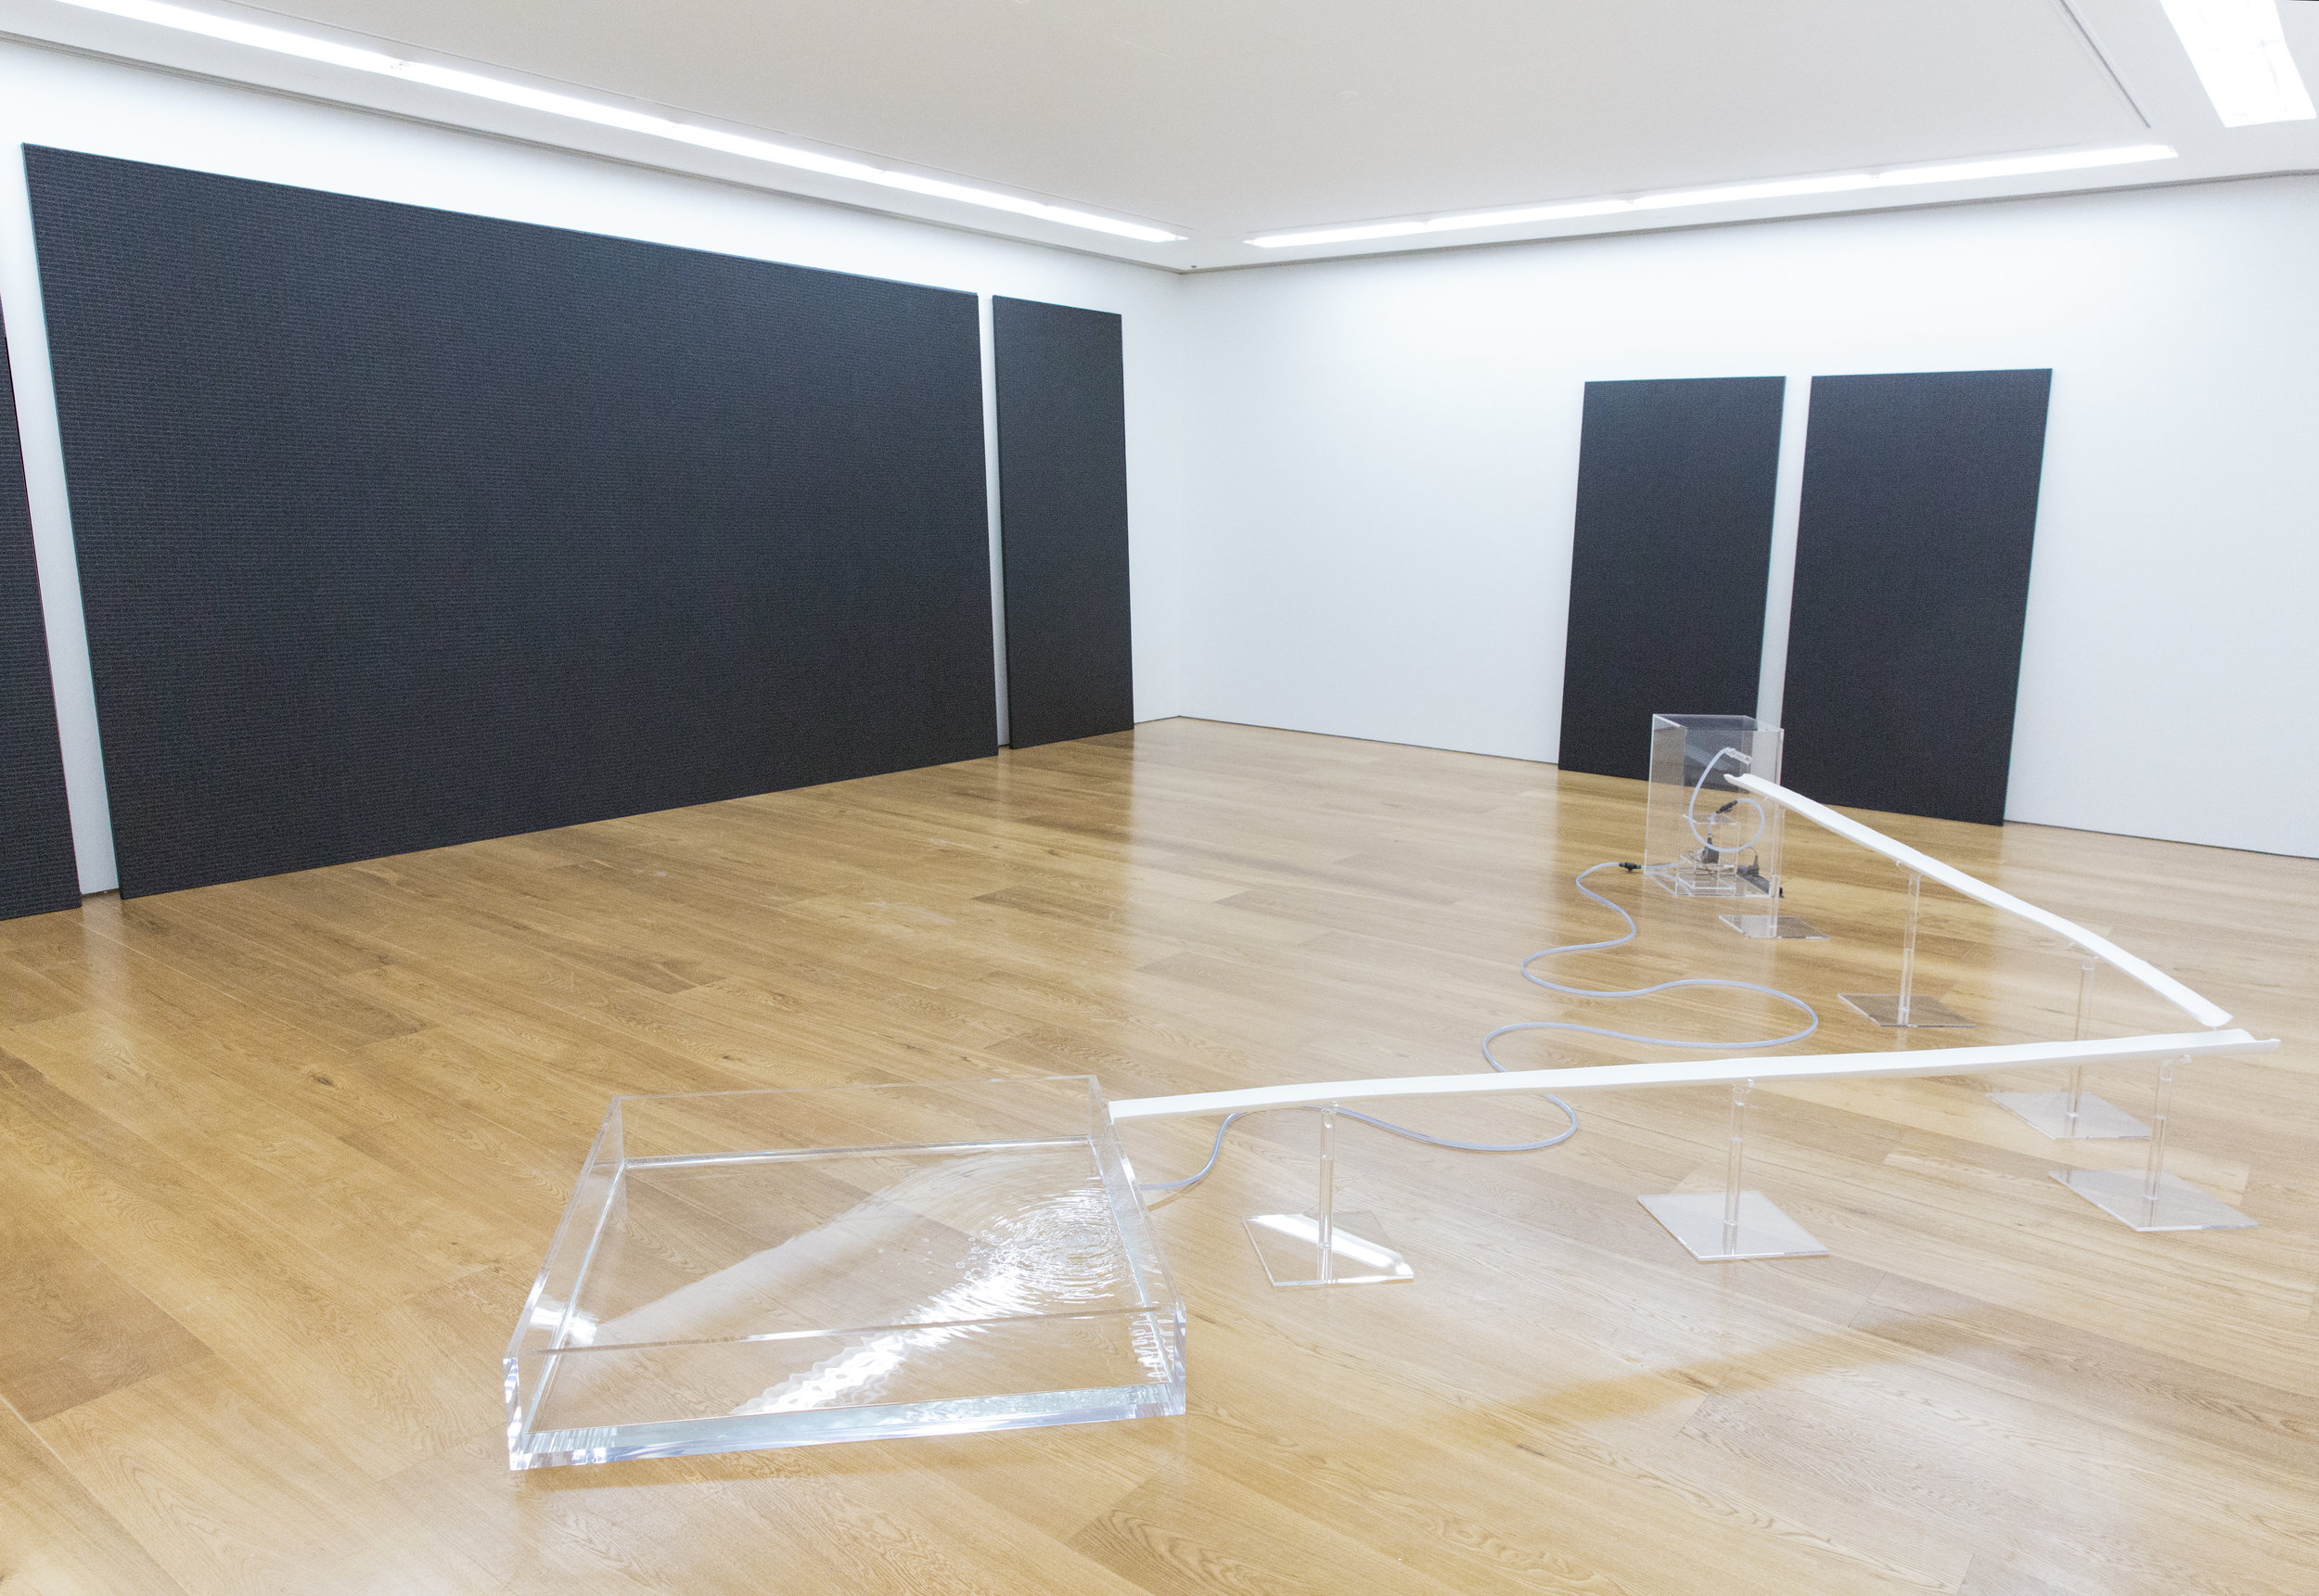 Installation view of Maria Taniguchi's exhibition at Galerie Perrotin, Hong Kong, 2016. Courtesy the artist and Galerie Perrotin.